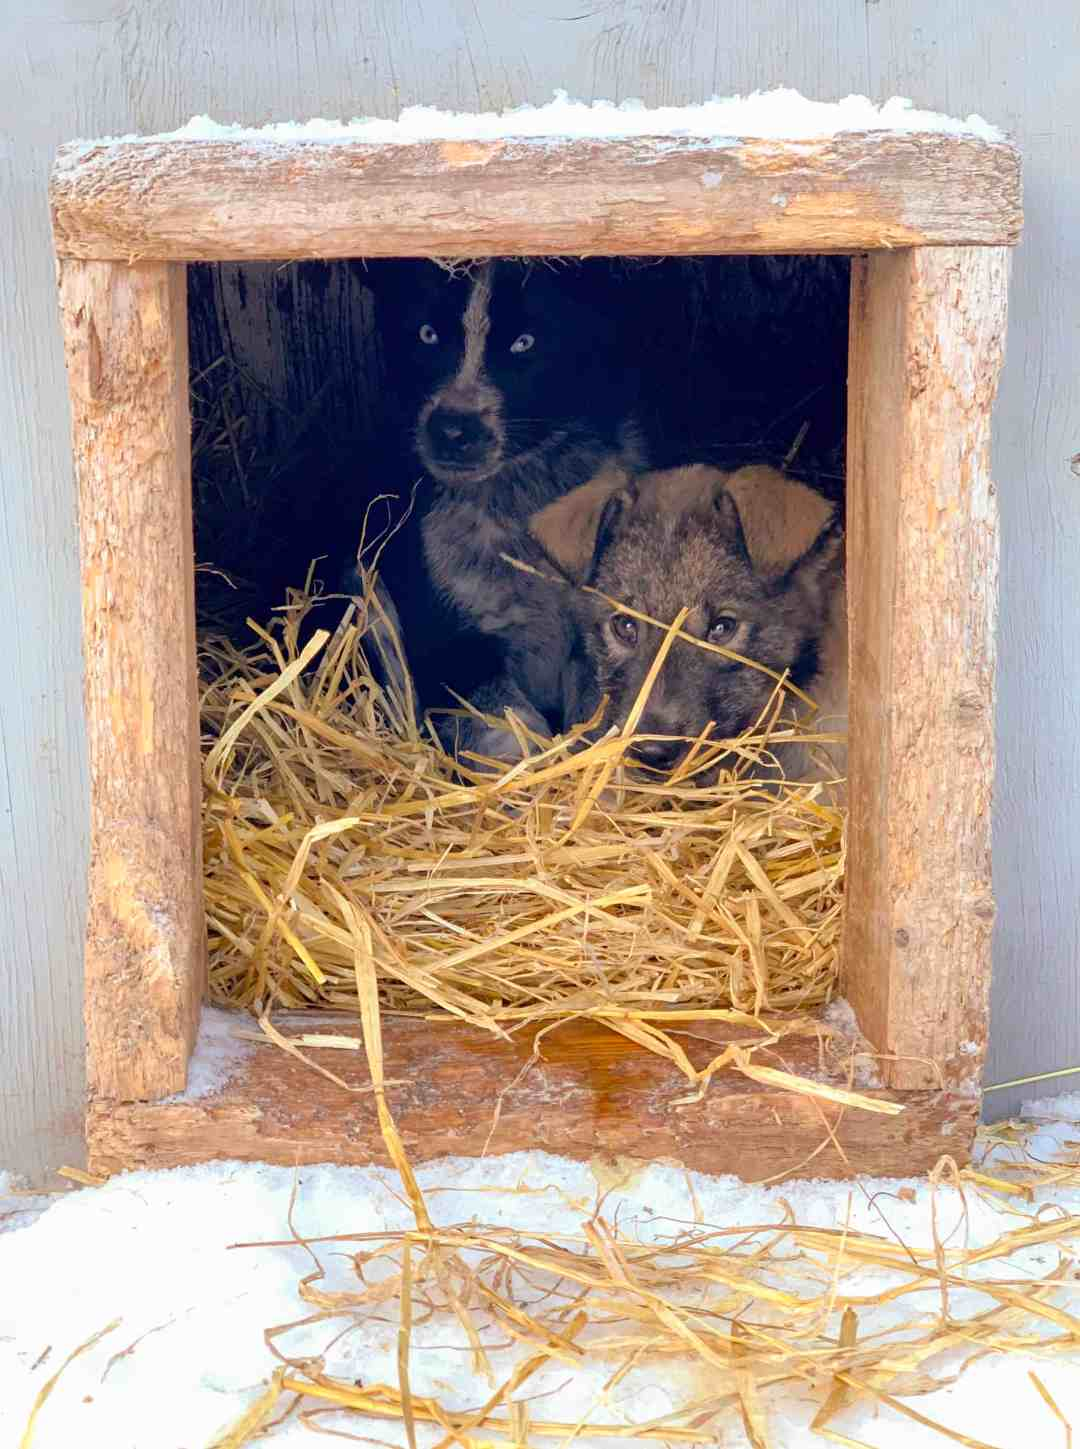 Bundling up to stay warm in their house